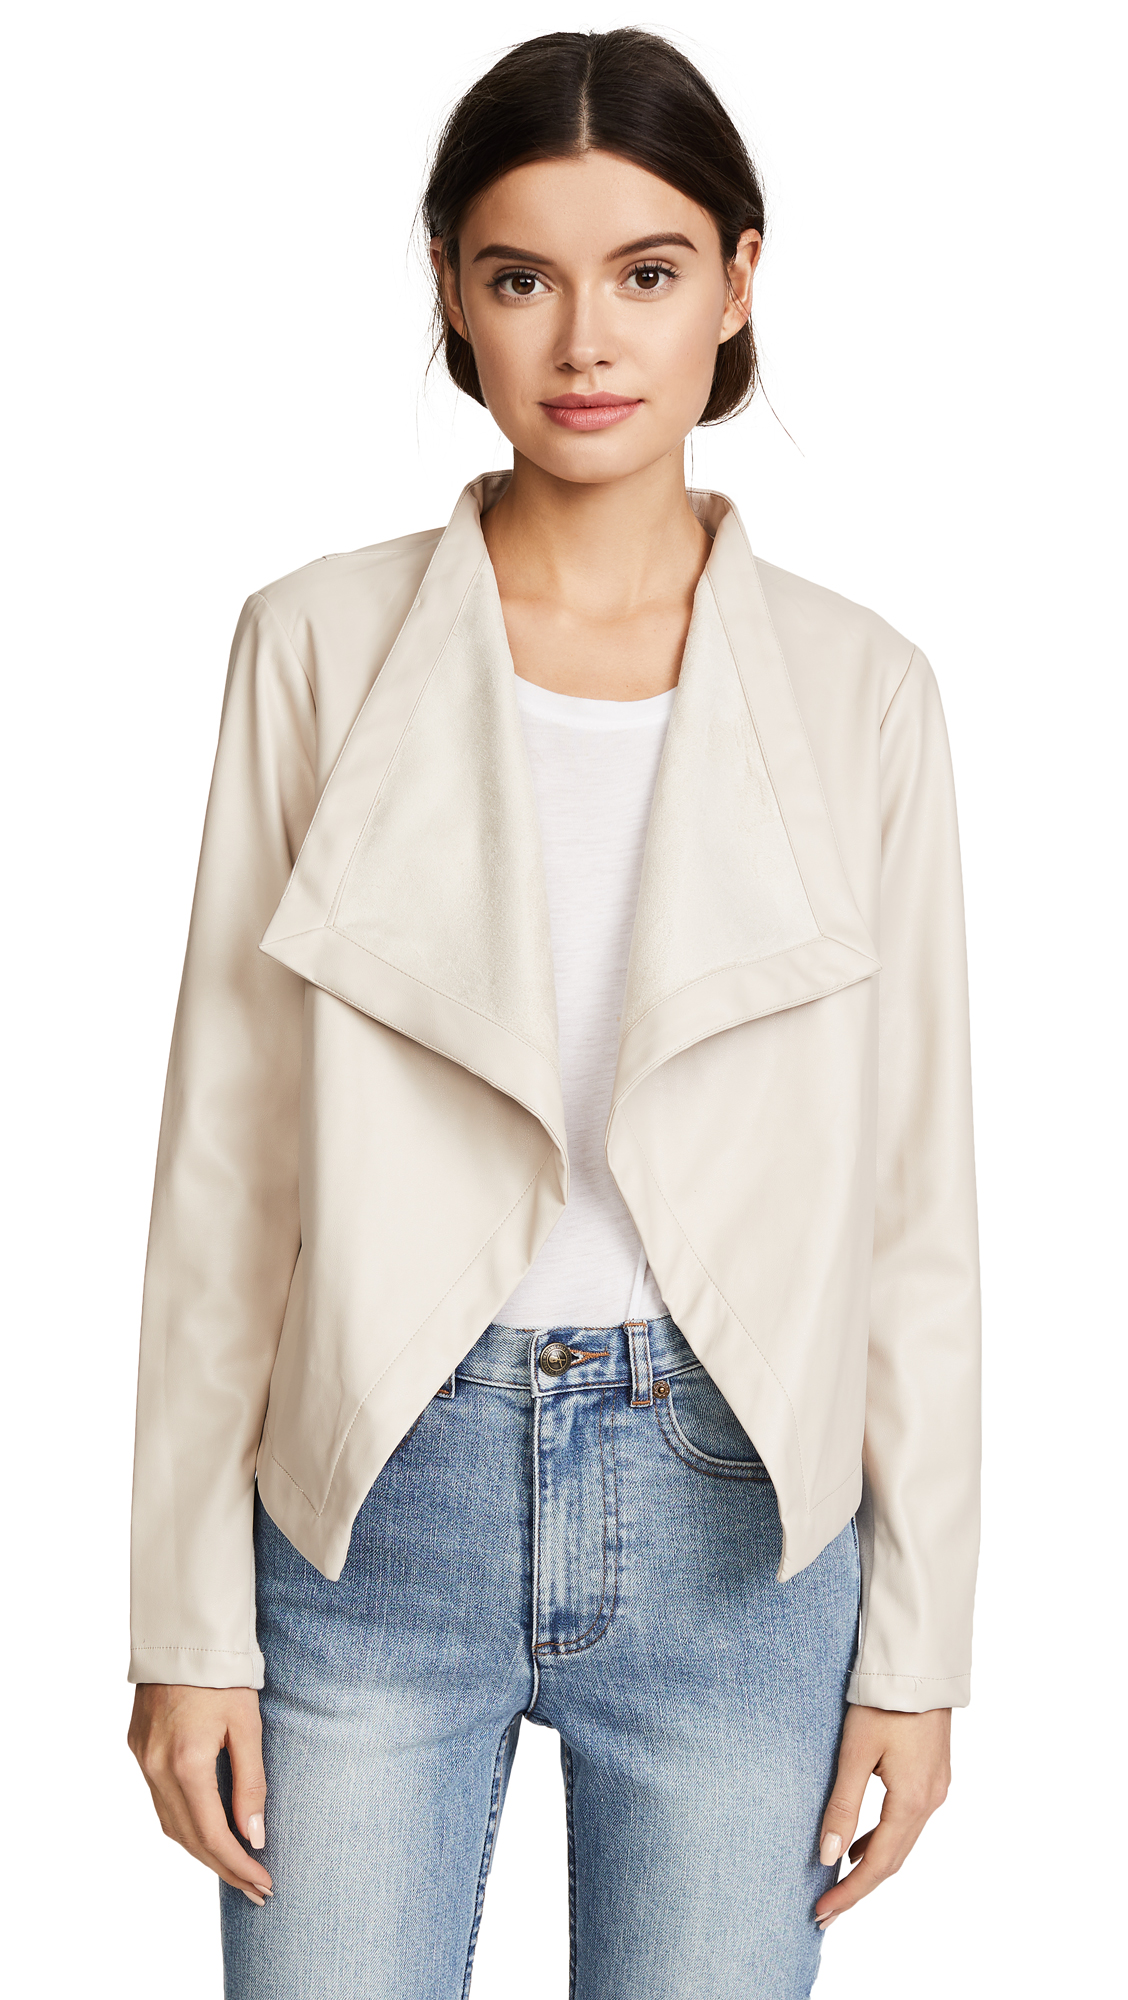 BB Dakota Peppin Vegan Leather Drapey Jacket - Bone